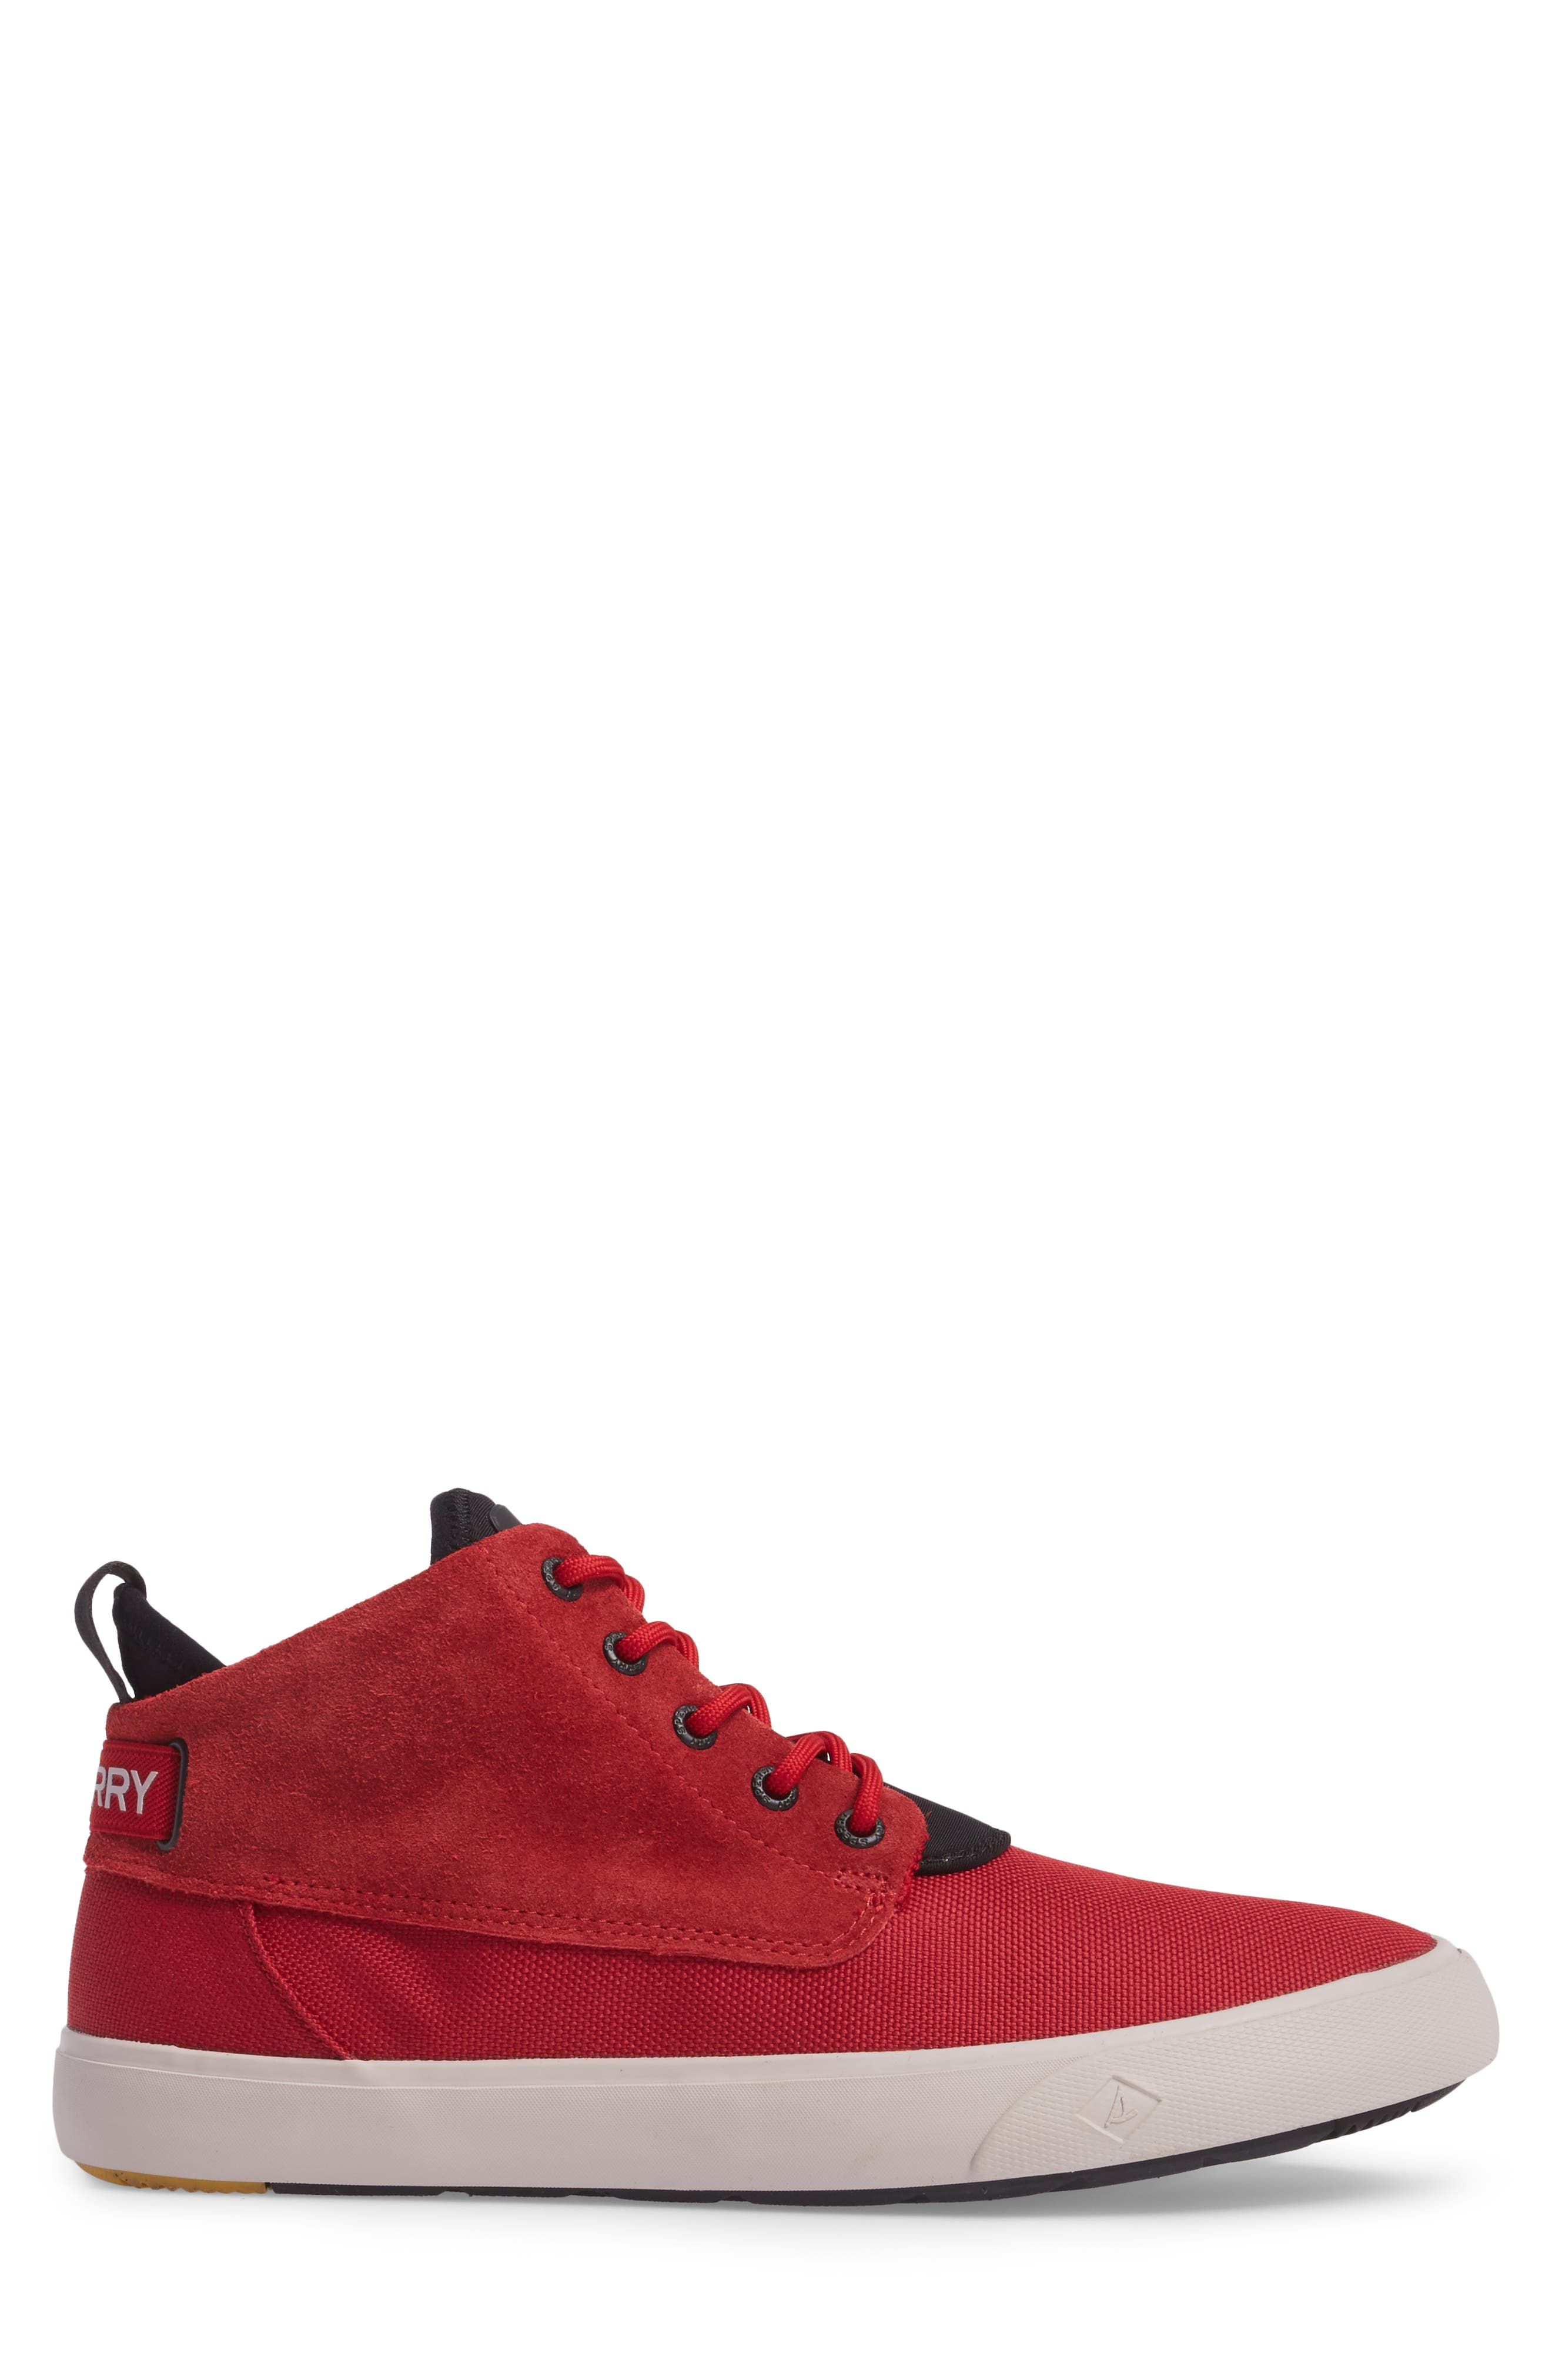 Cutwater Sneaker,                             Alternate thumbnail 3, color,                             RED